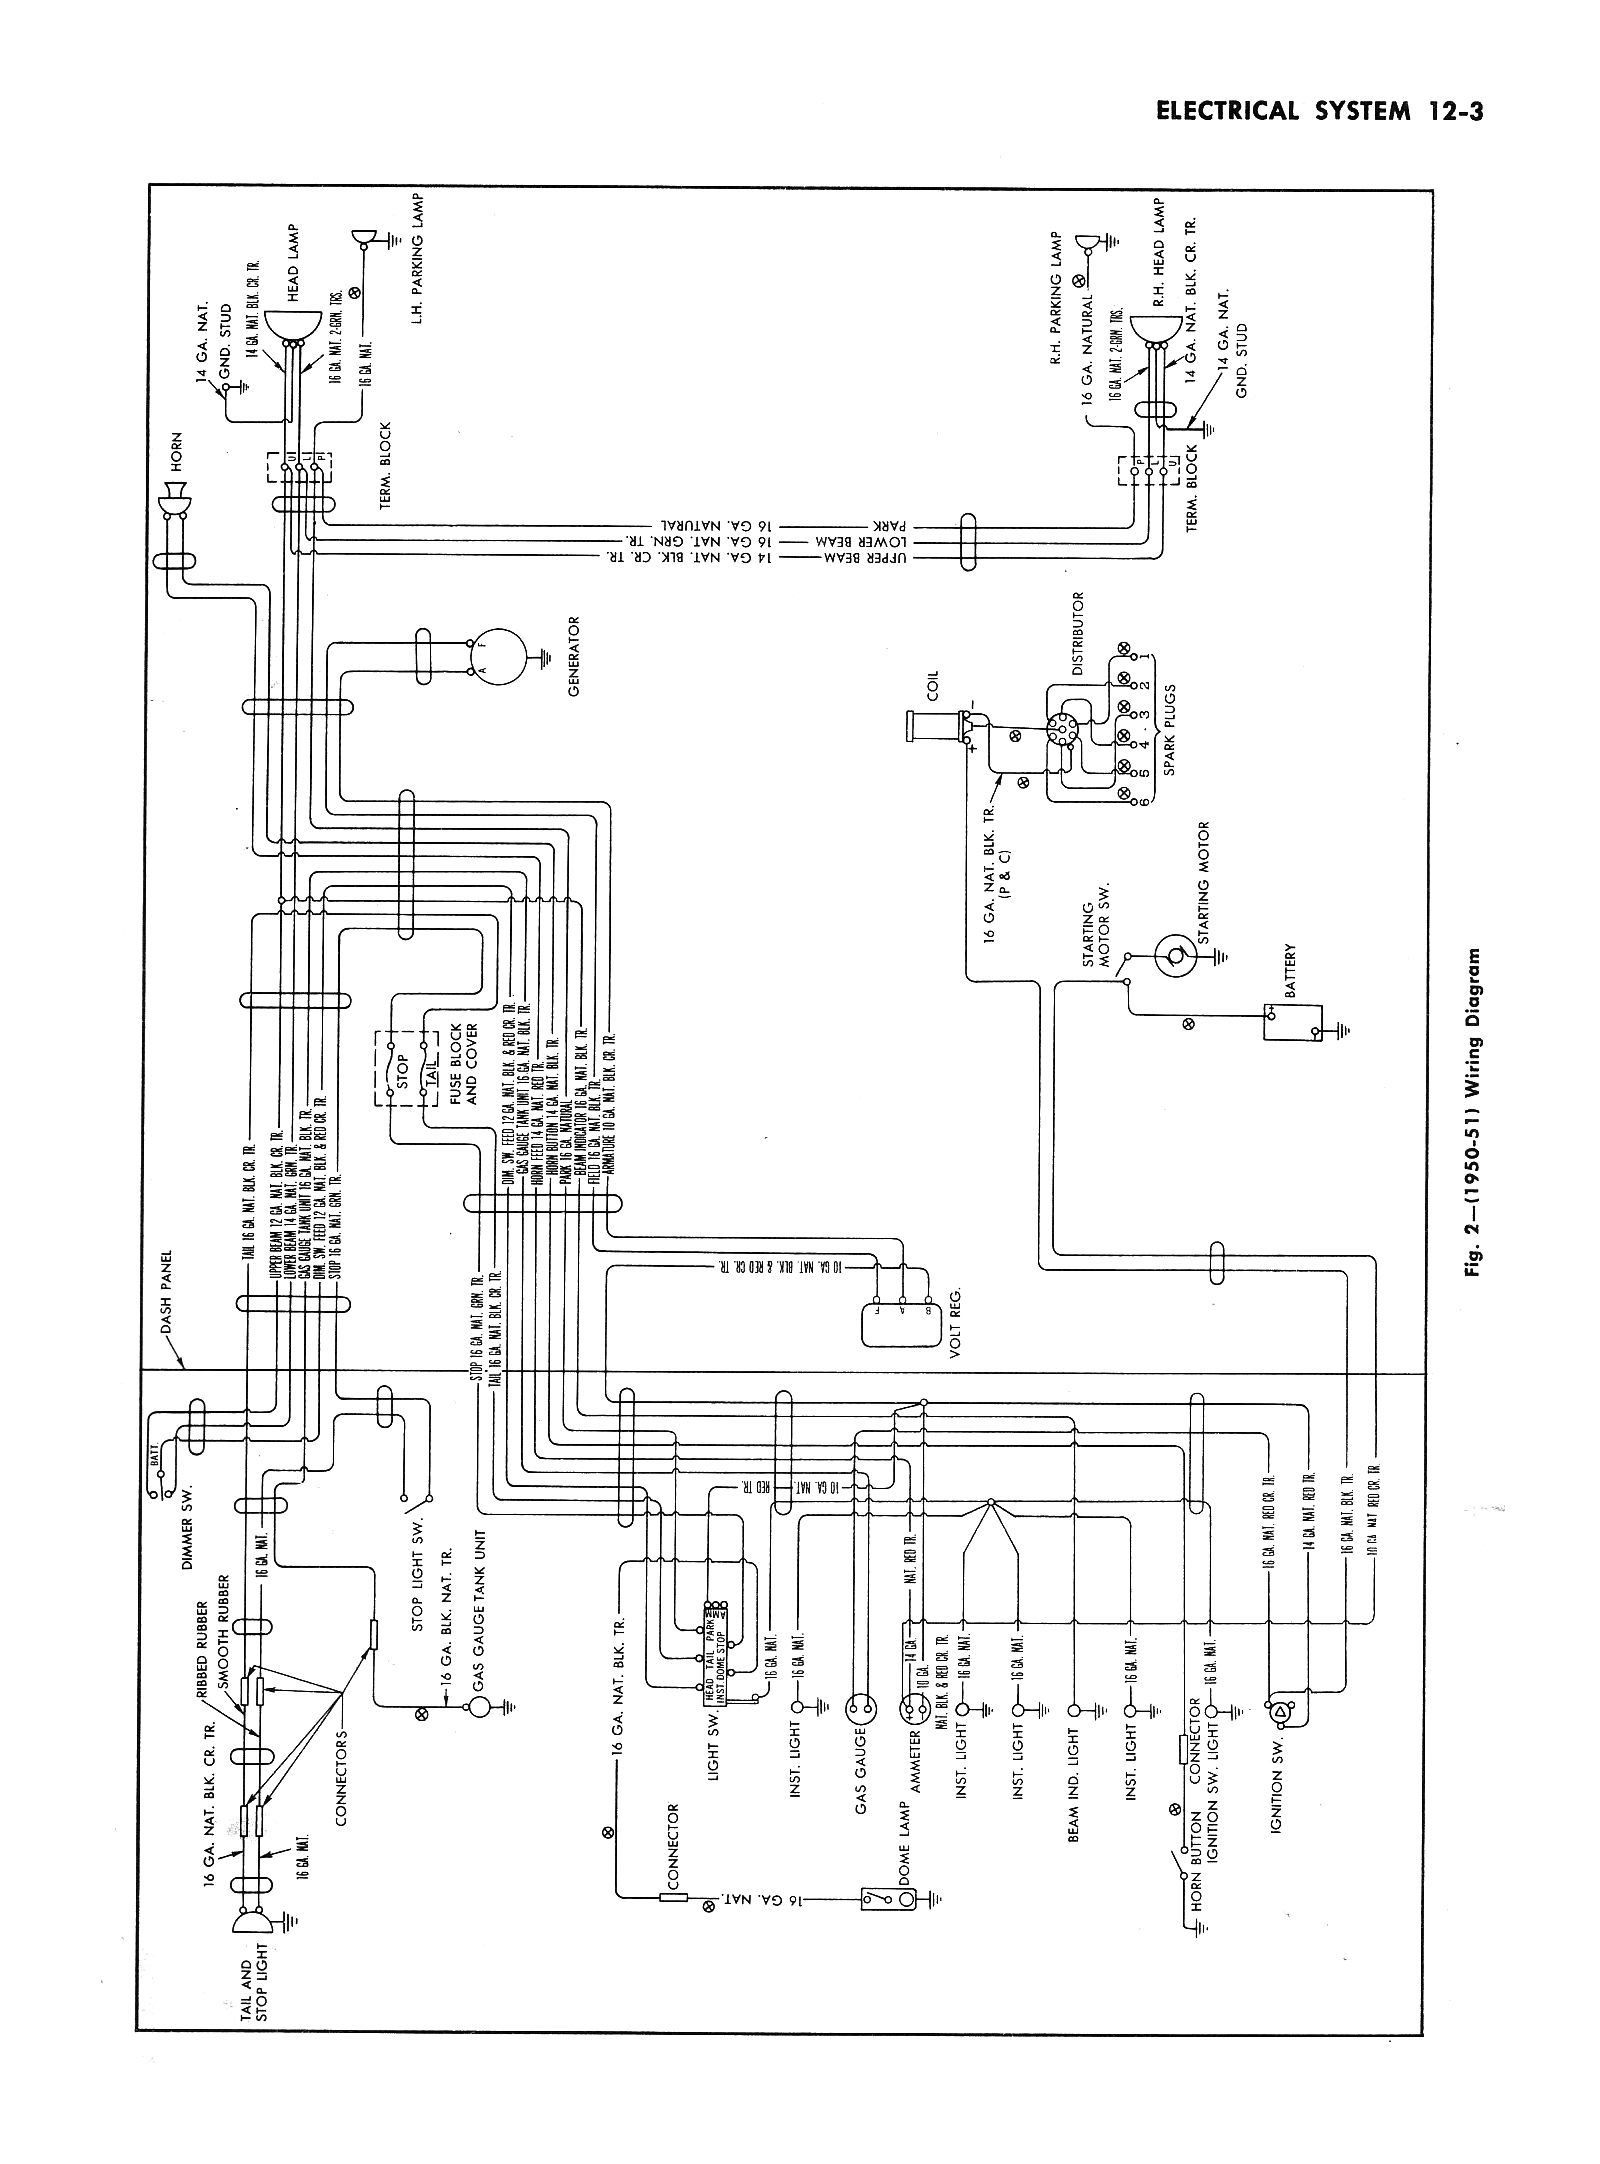 chevy truck wiring diagram on 1959 chevy truck wiring diagram